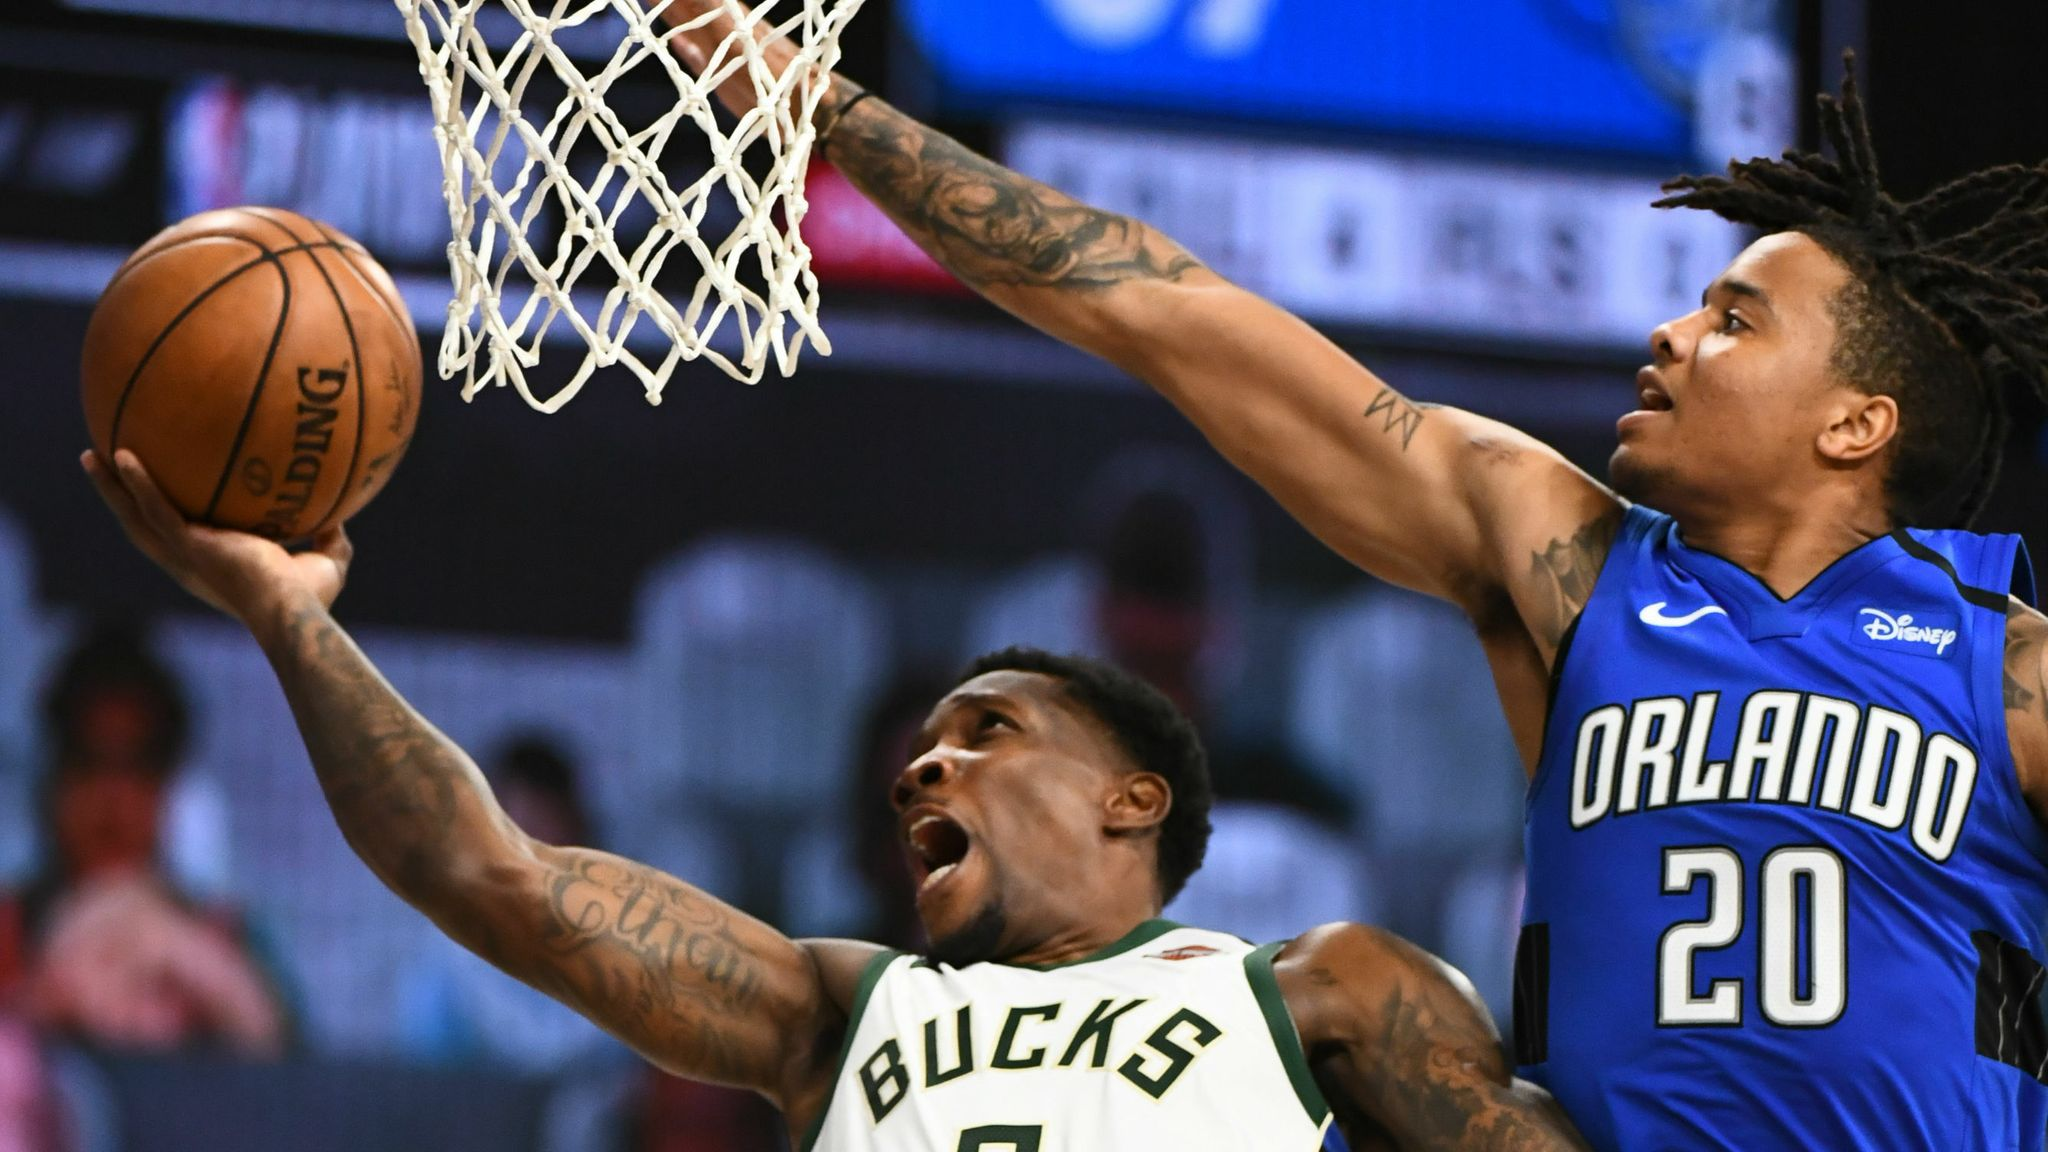 Orlando Magic and the Milwaukee Bucks